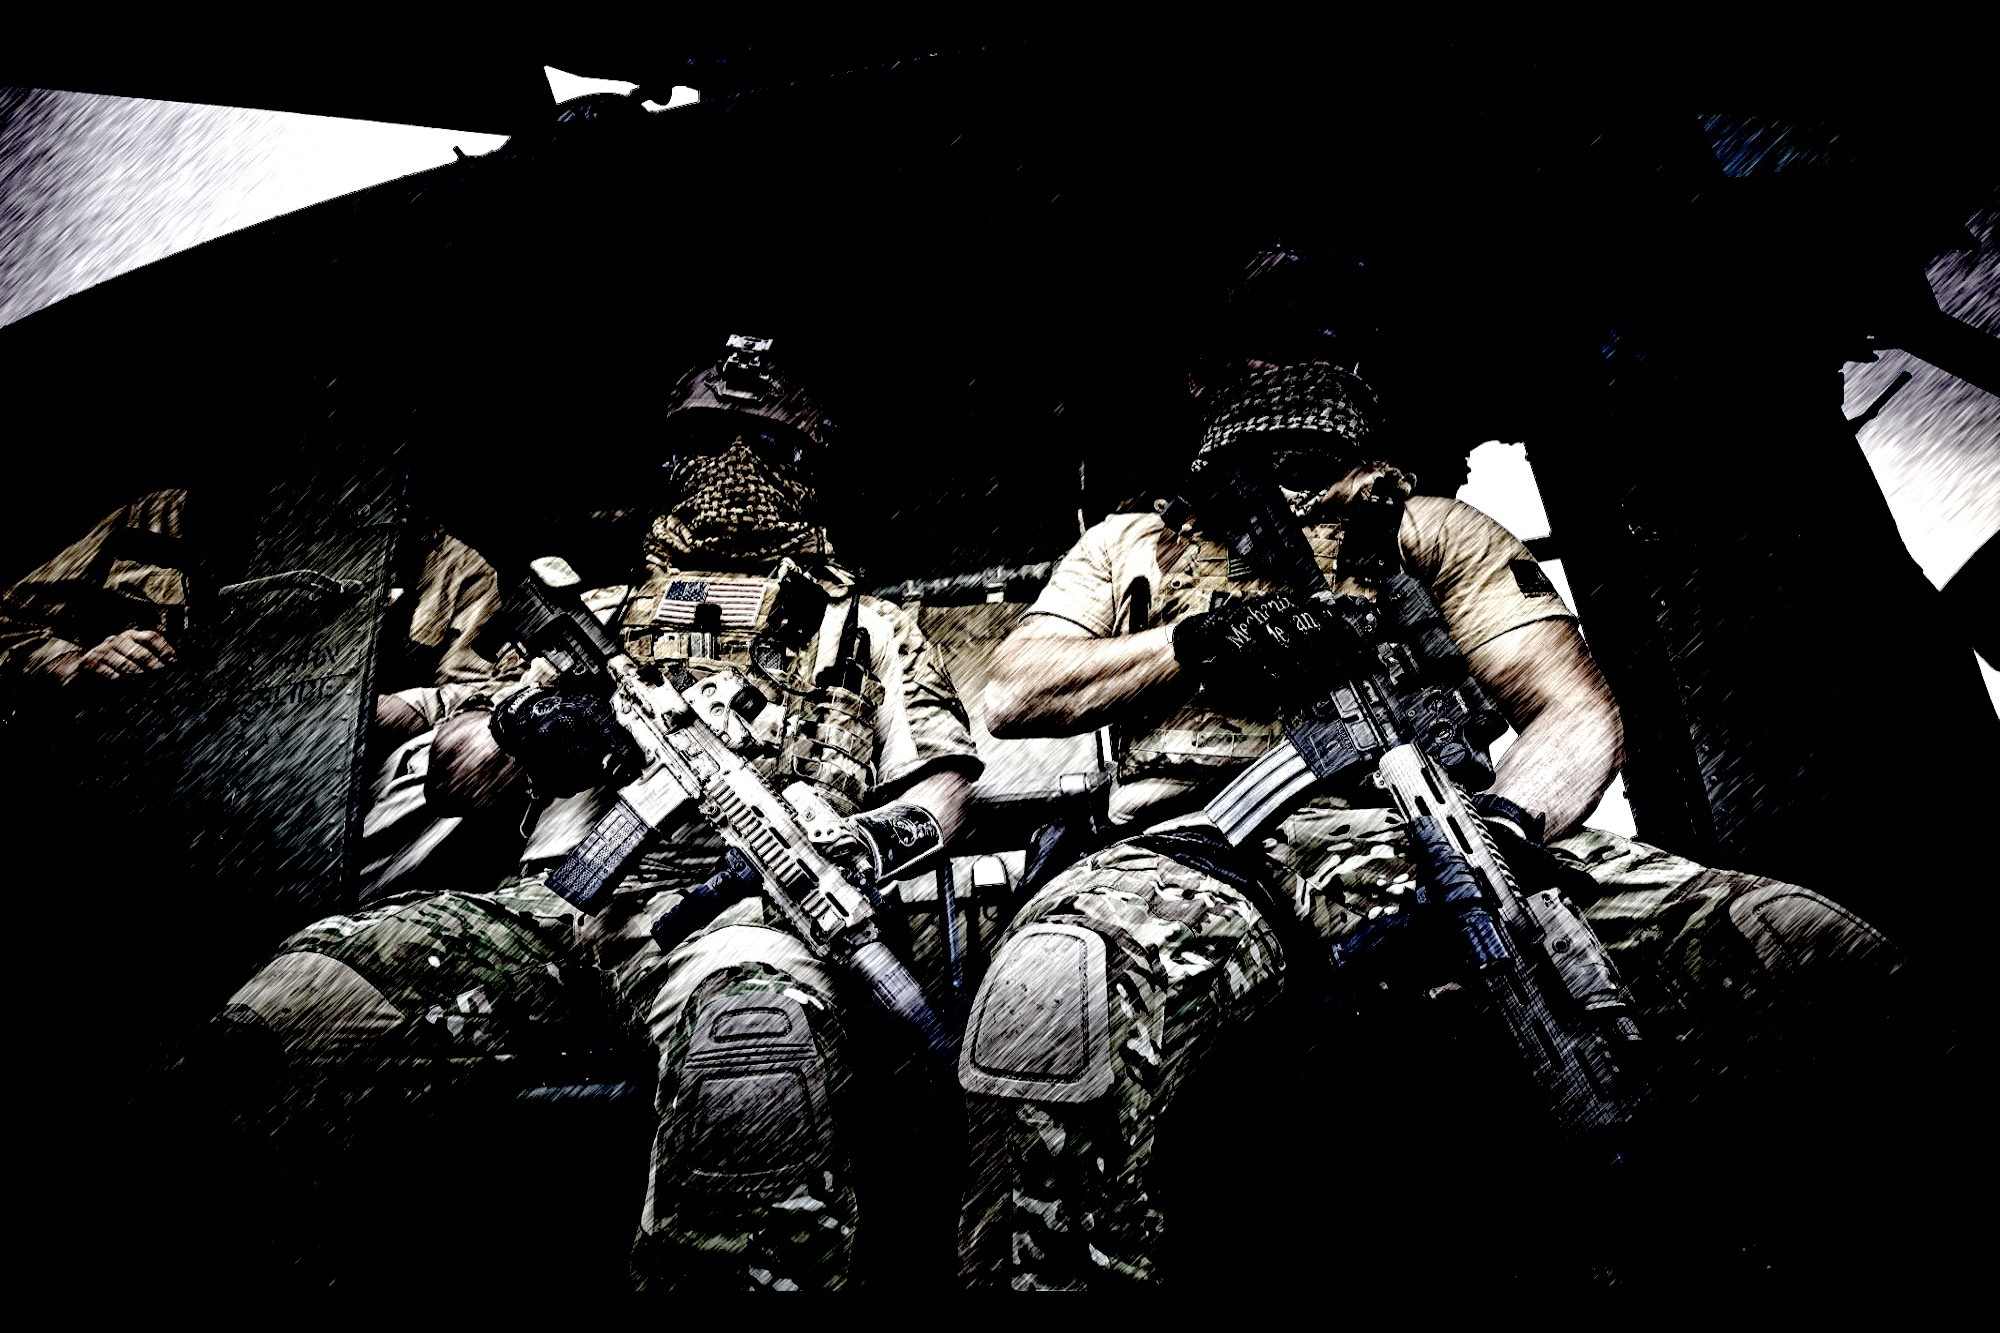 Us army special forces wallpaper 70 images - Military screensavers wallpapers ...